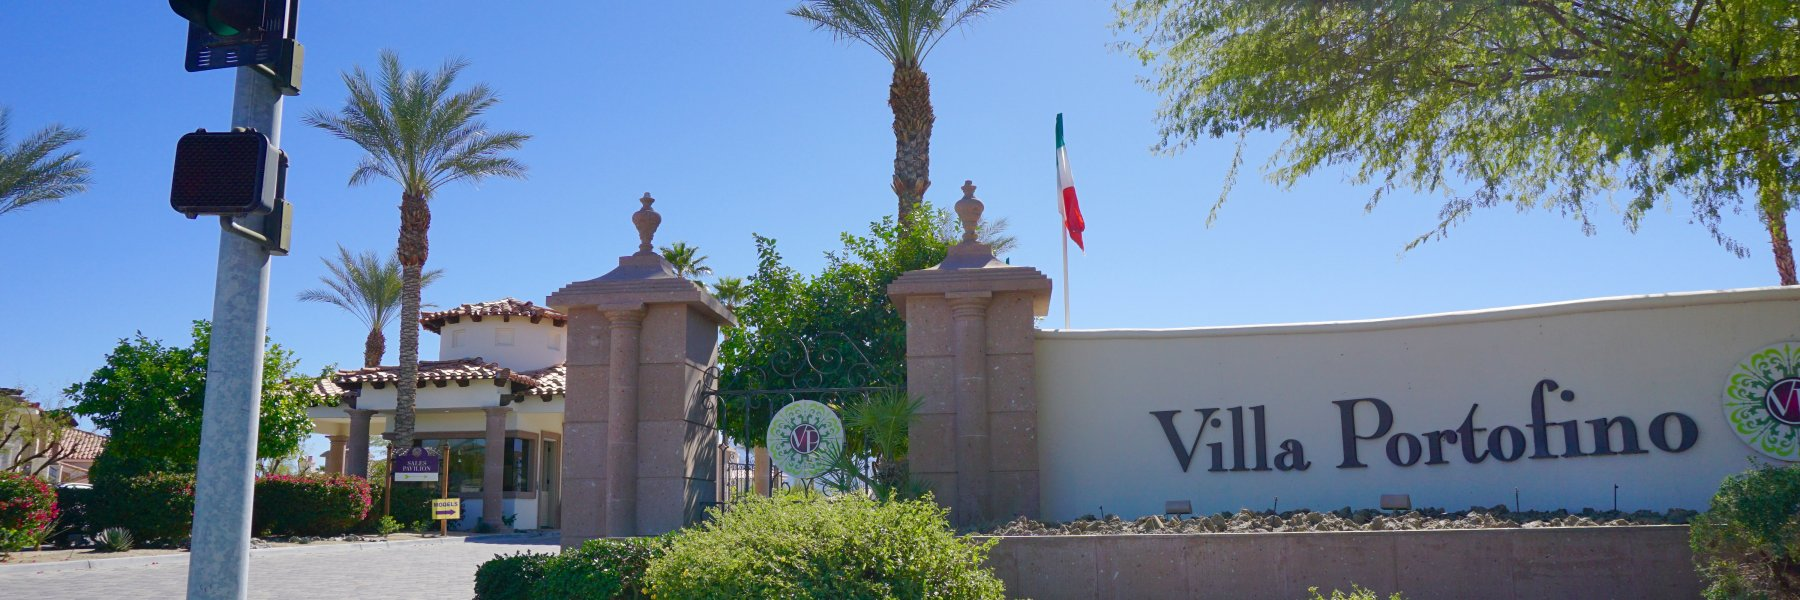 Villa Portofino is a community of homes in Palm Desert California